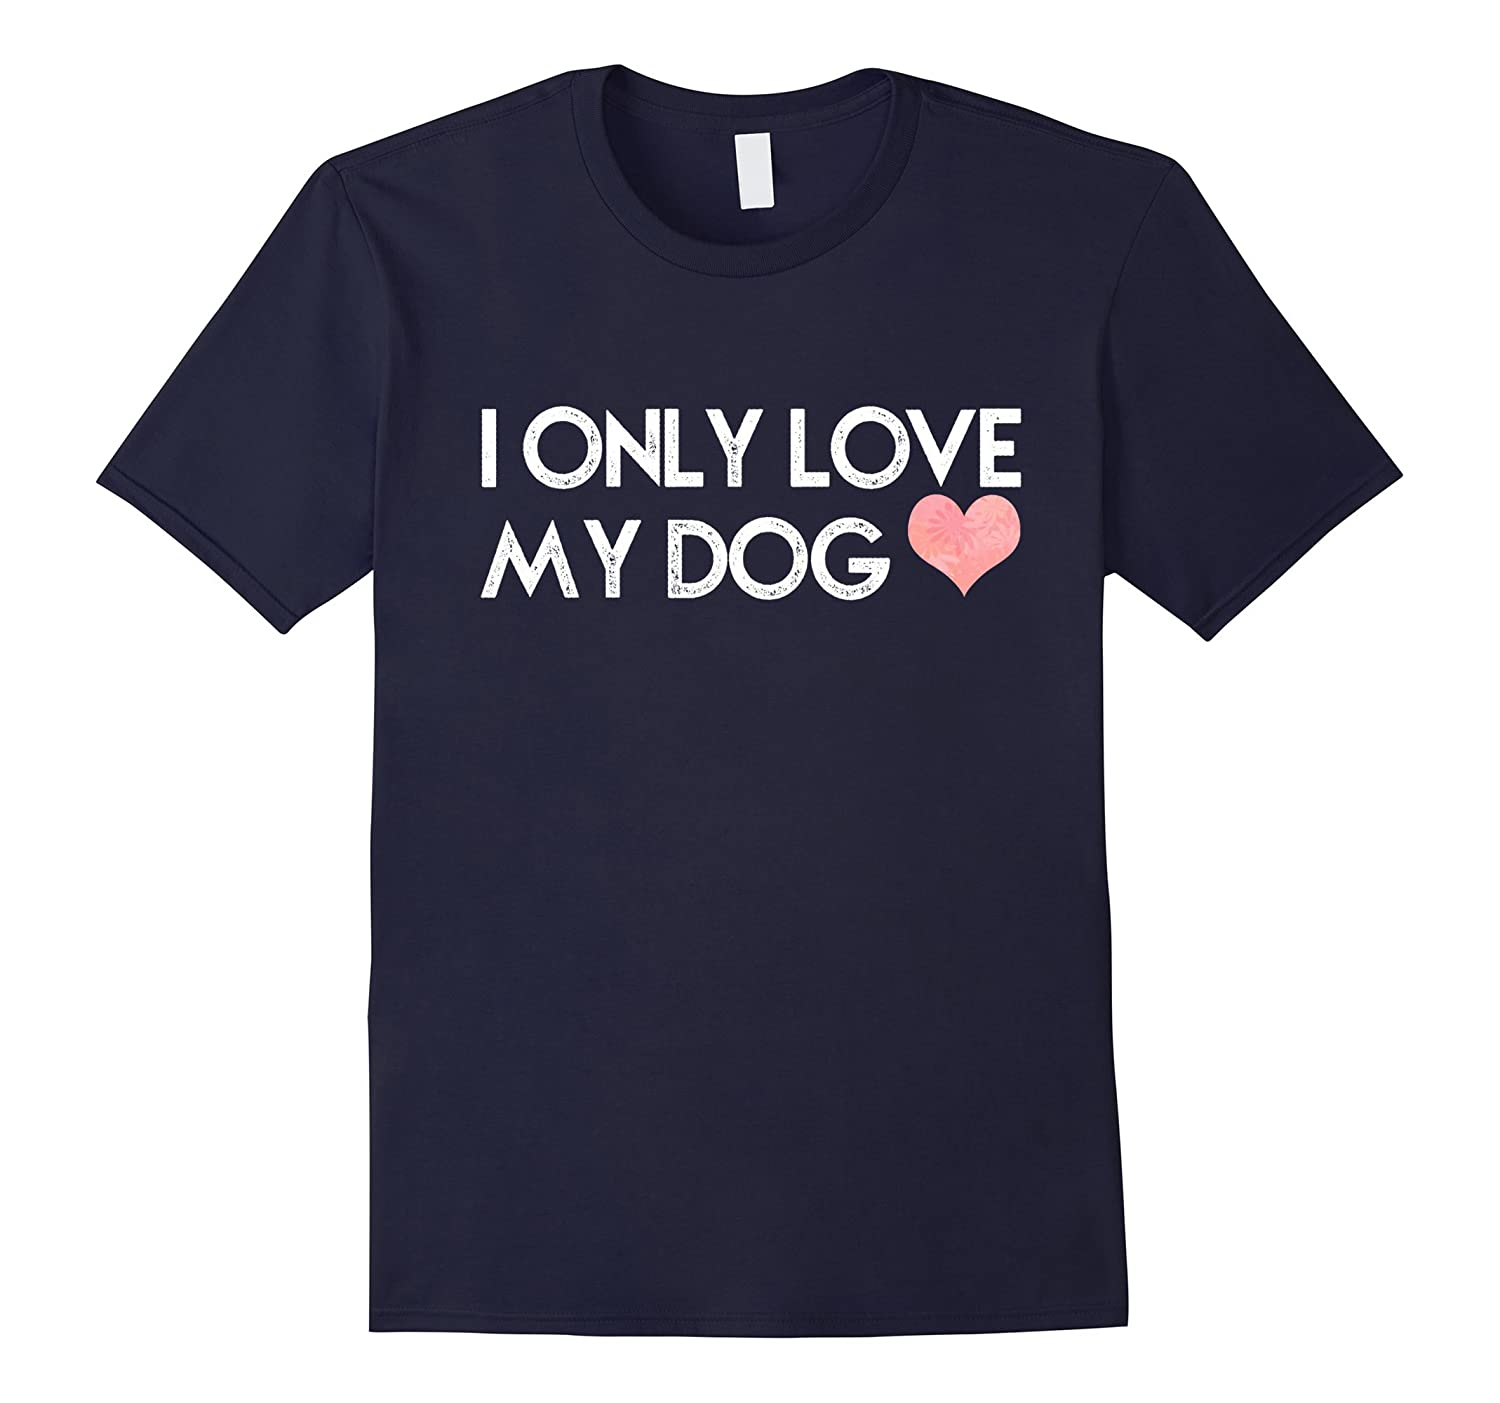 Aw Cute Dog Shirts I Only Love My Dog Funny Dogs T-shirt-BN